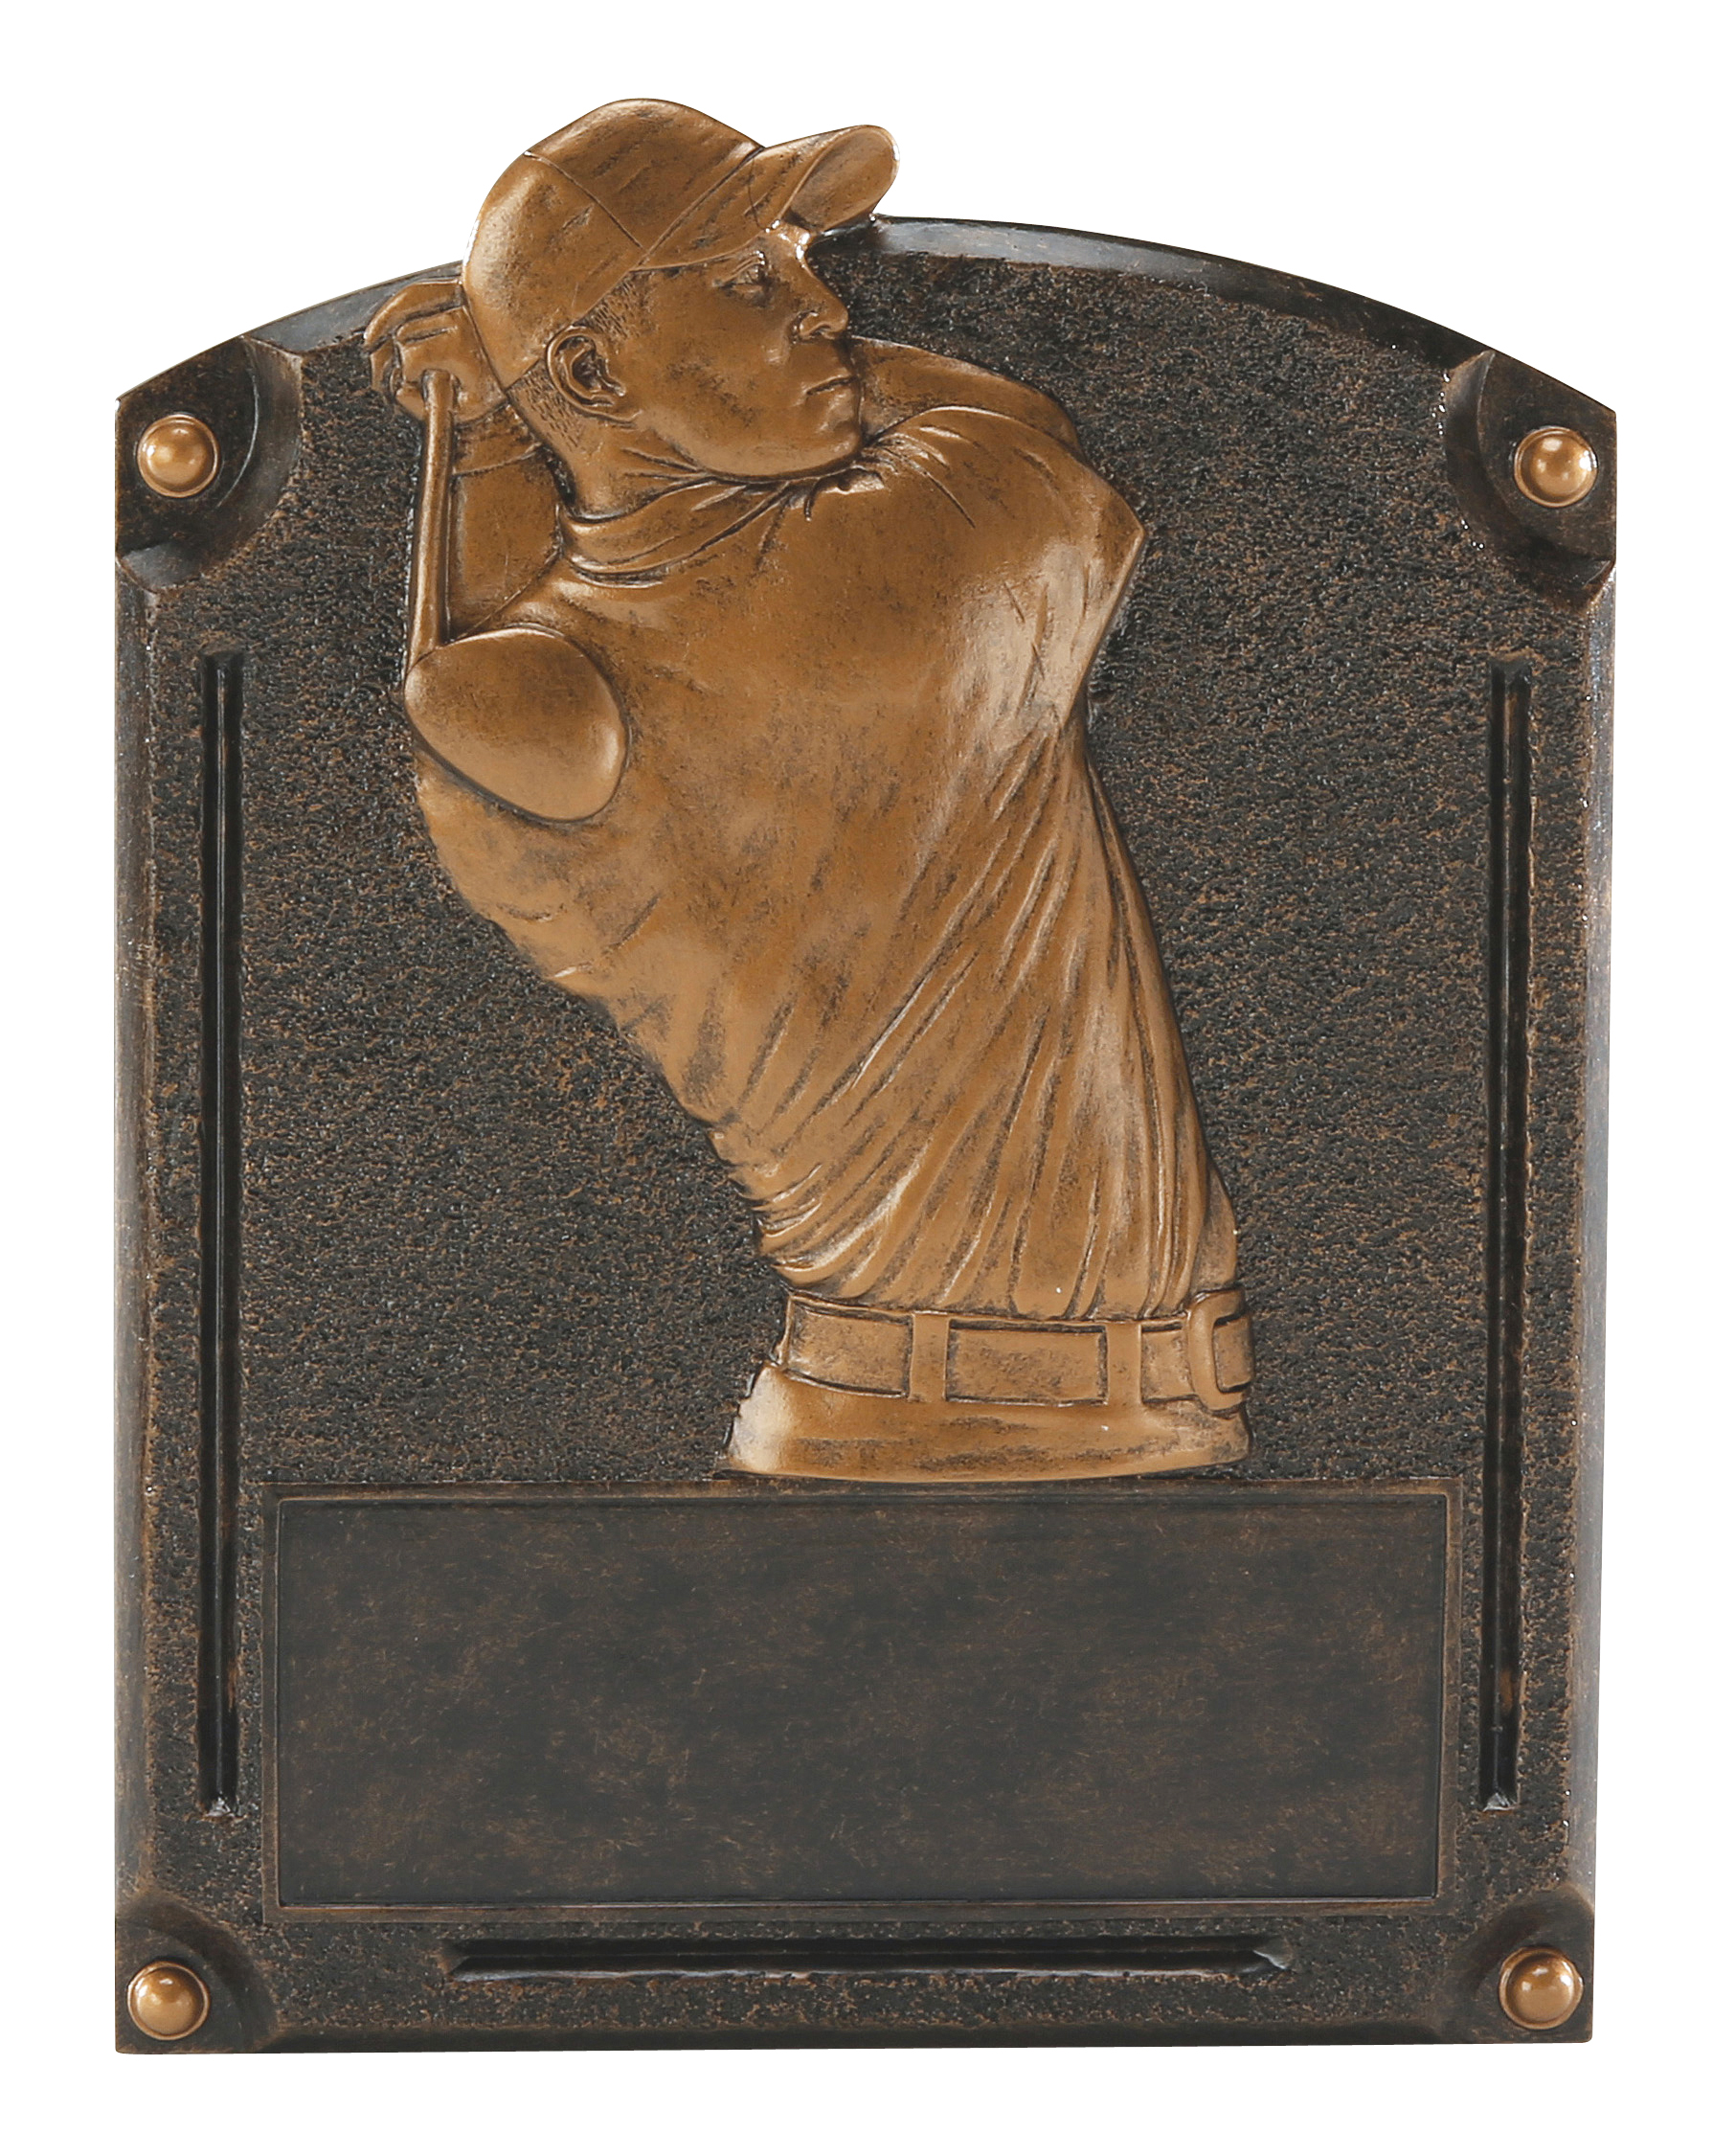 "Legends of Fame Series - Golf, Male   54721GS - 8"" tall x 6"" wide  Can stand up or hang on wall   Price = $22"